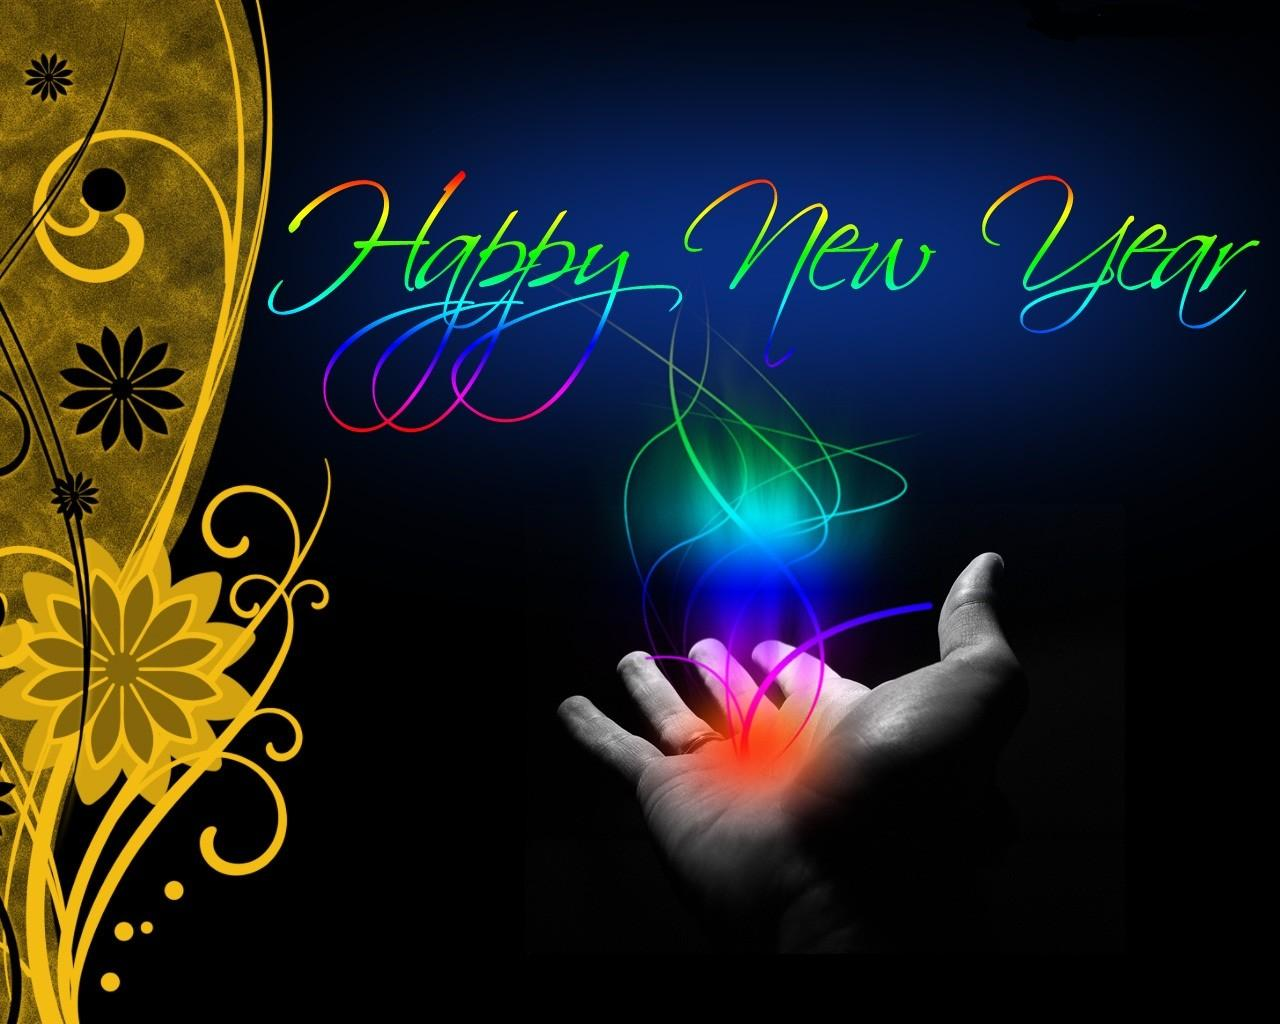 Happy New Year Friends 2013 Love